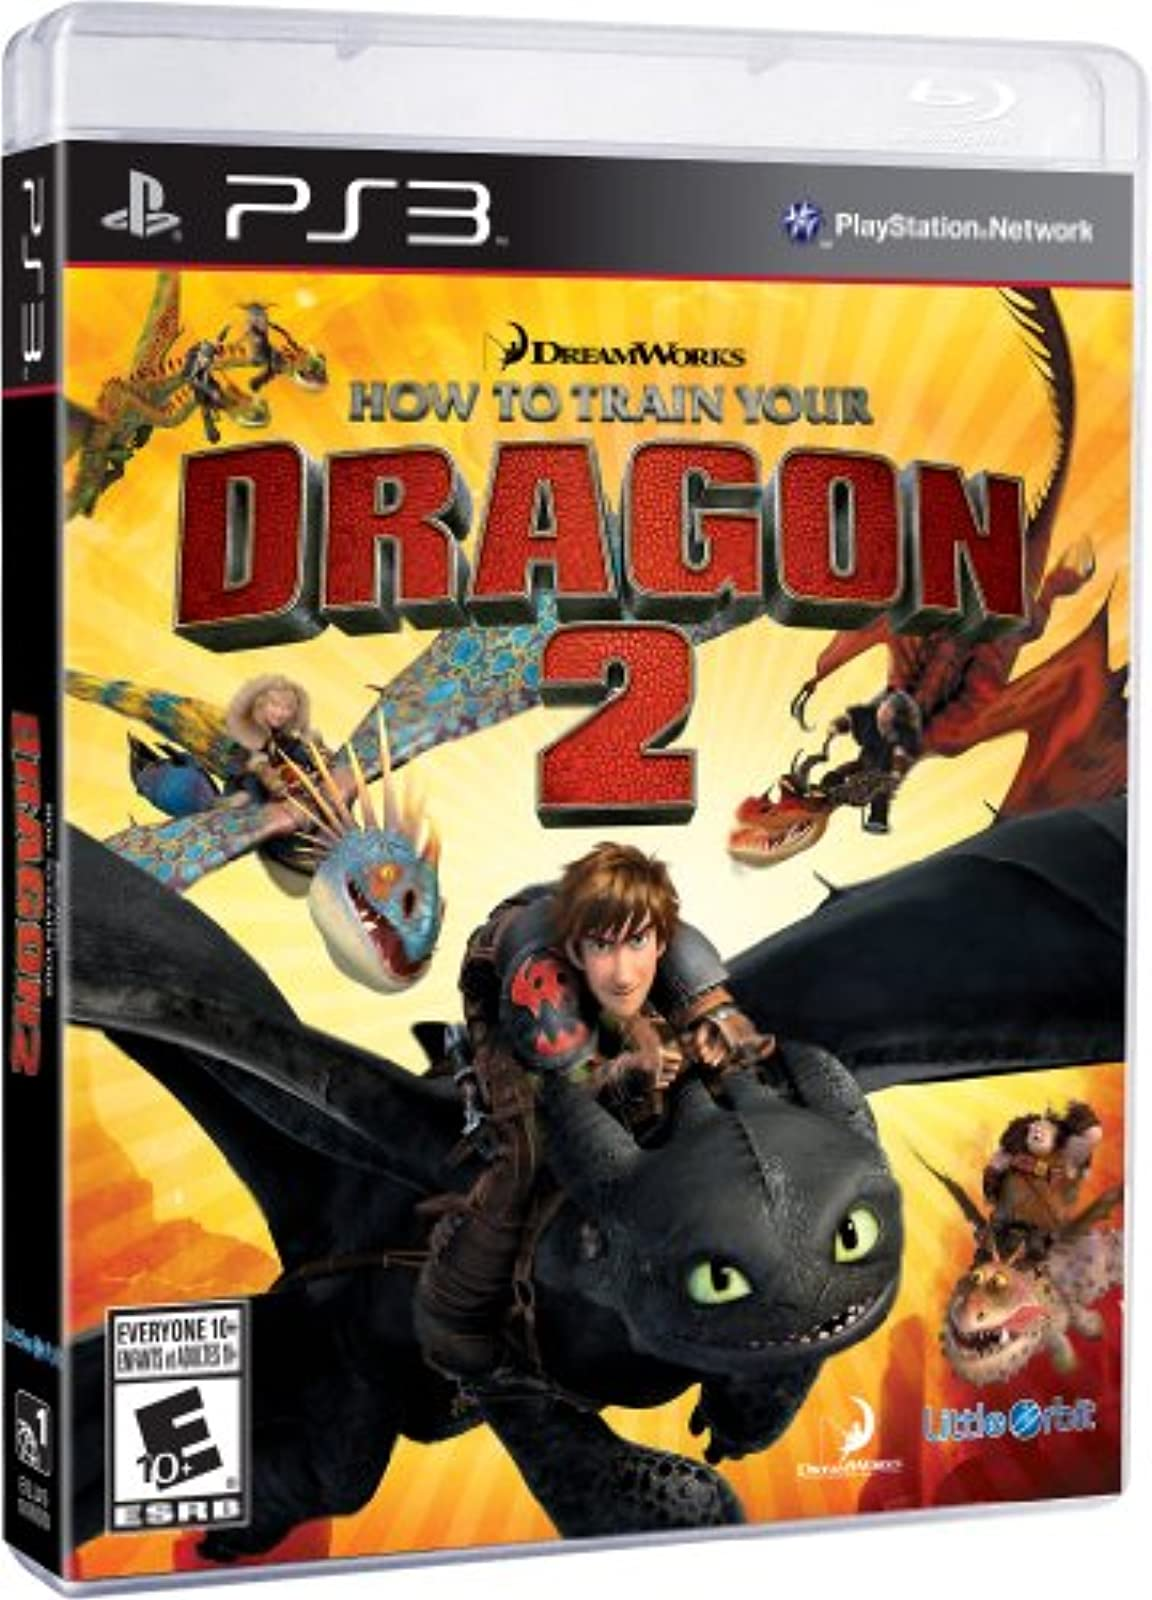 How To Train Your Dragon 2: The Video Game For PlayStation 3 PS3